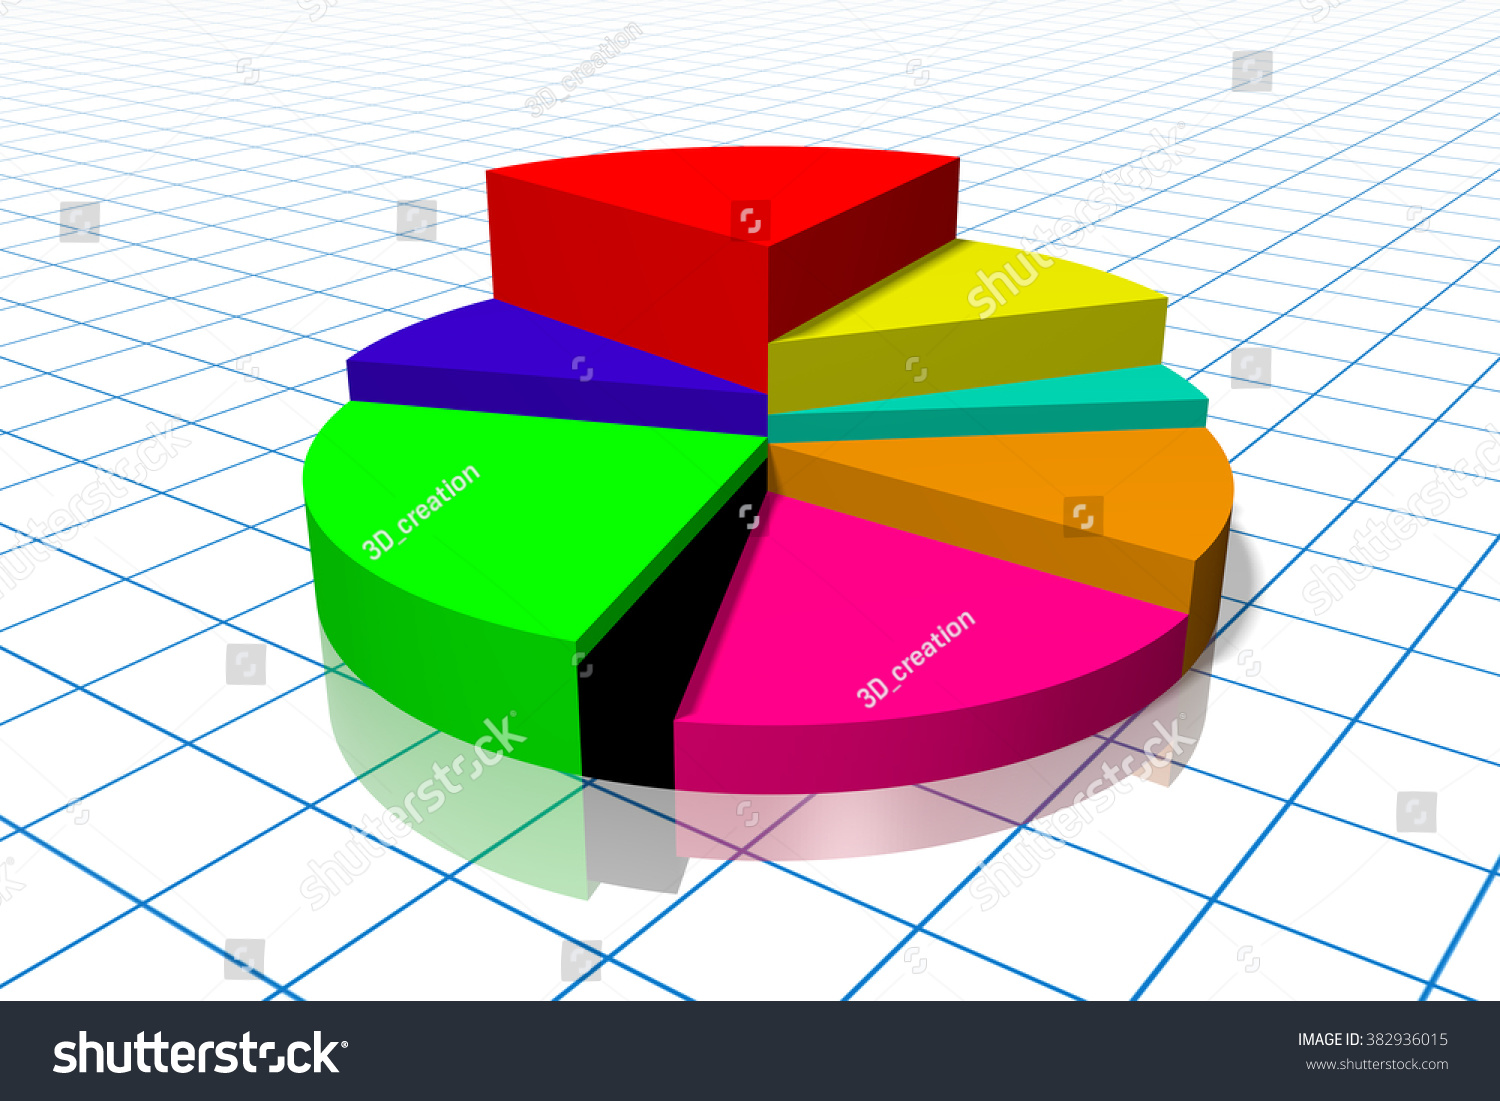 3d pie chart enhance your presentation stock illustration 3d pie chart to enhance your presentation great for topics like financial data or report nvjuhfo Choice Image